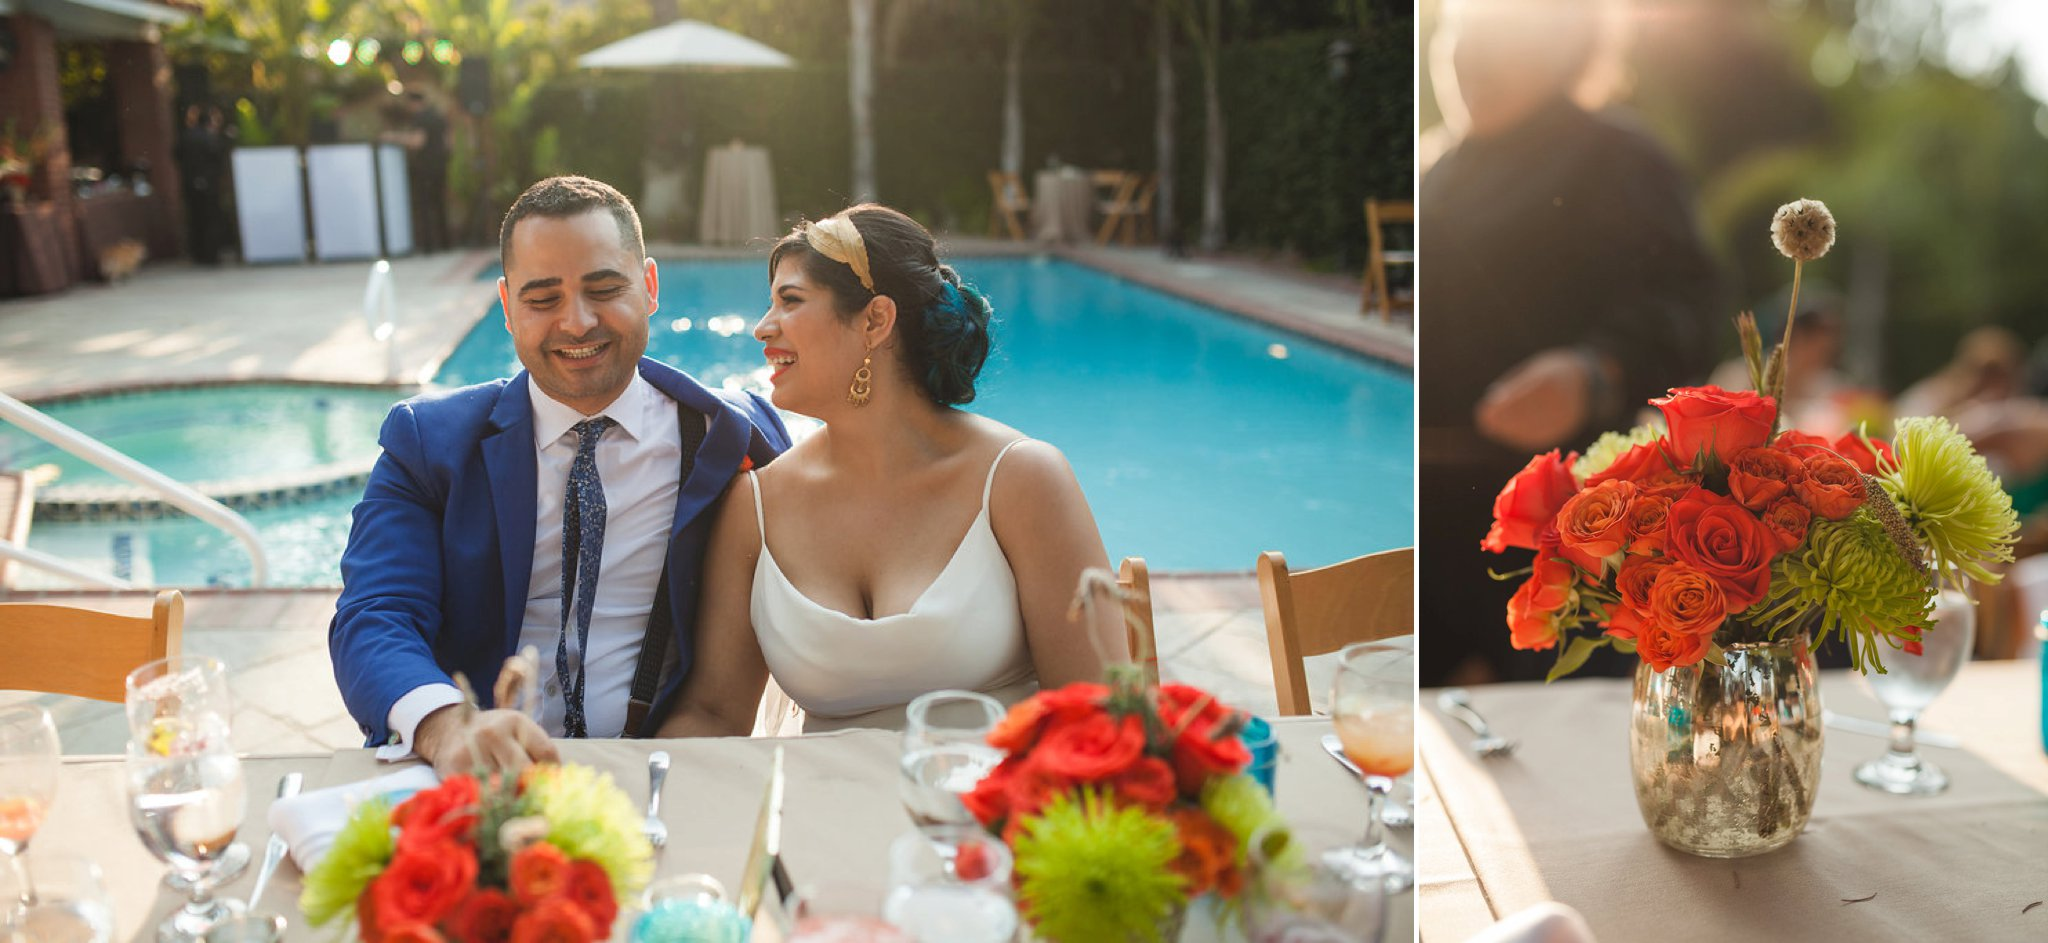 Feminist Wedding Photography Carly Romeo Photography Richmond VA Destination Altadena California Bouquet Florals Backyard Reception Pool Party